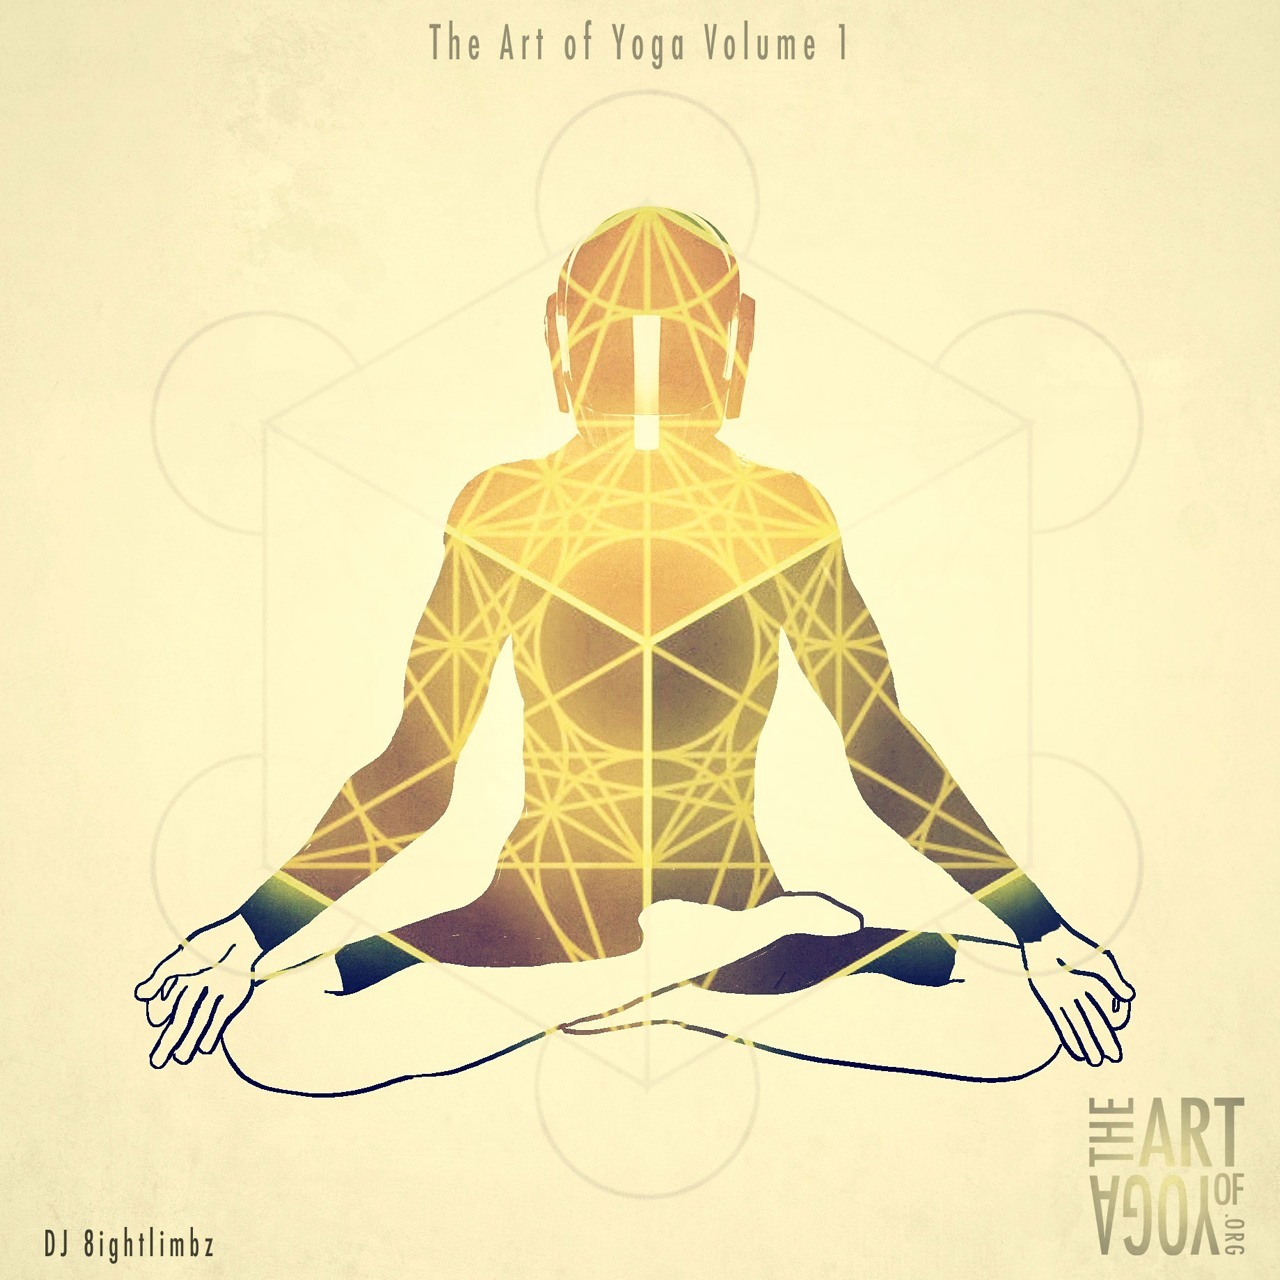 the-art-of-yoga:  Download DJ 8ightlimbz - The Art of Yoga Vol.1  https://www.dropbox.com/s/ovcoiqu7edvs87s/Recording%204-29-13%2C%2010.05.27%20PM.aifc